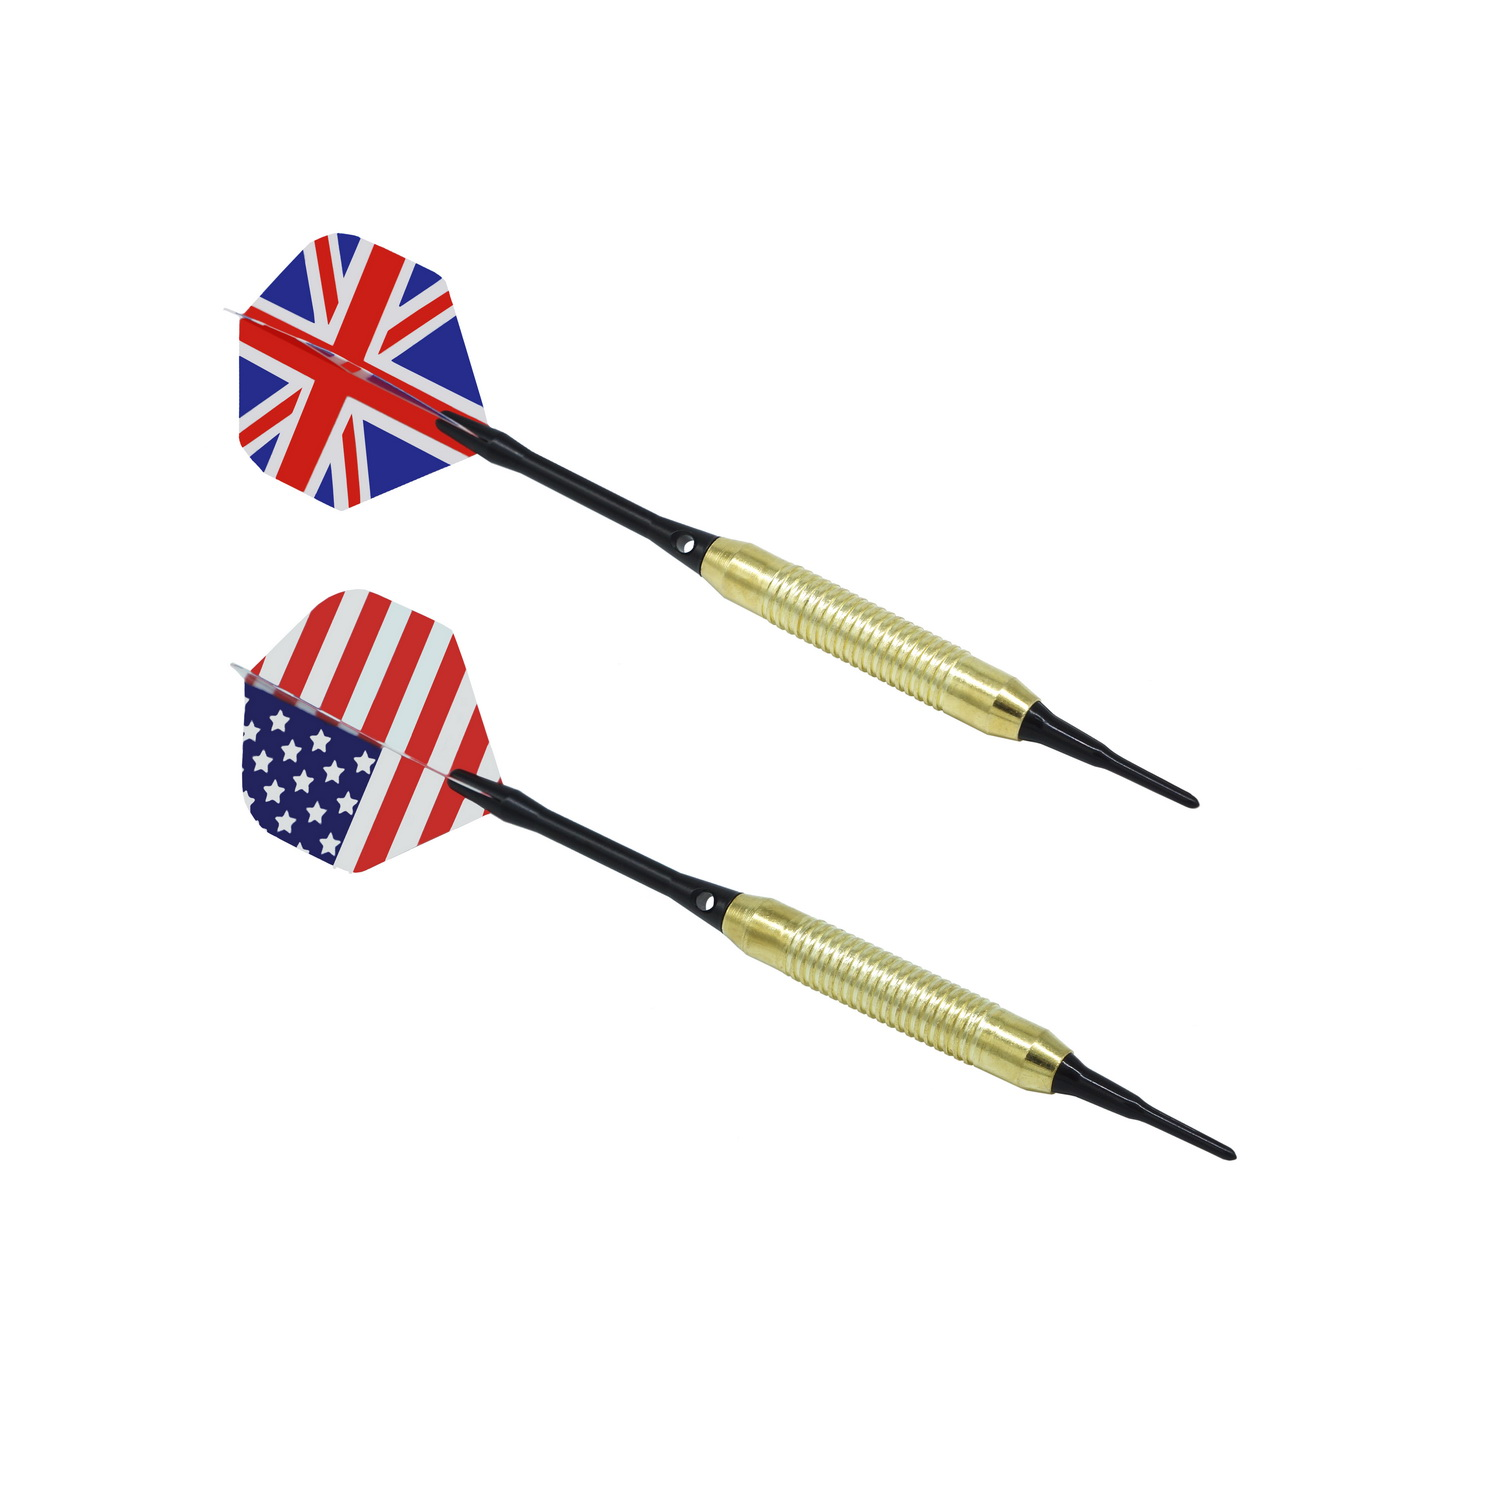 Cheap Brass Darts Set With Plastic Dart Shaft&flight with soft dat tip